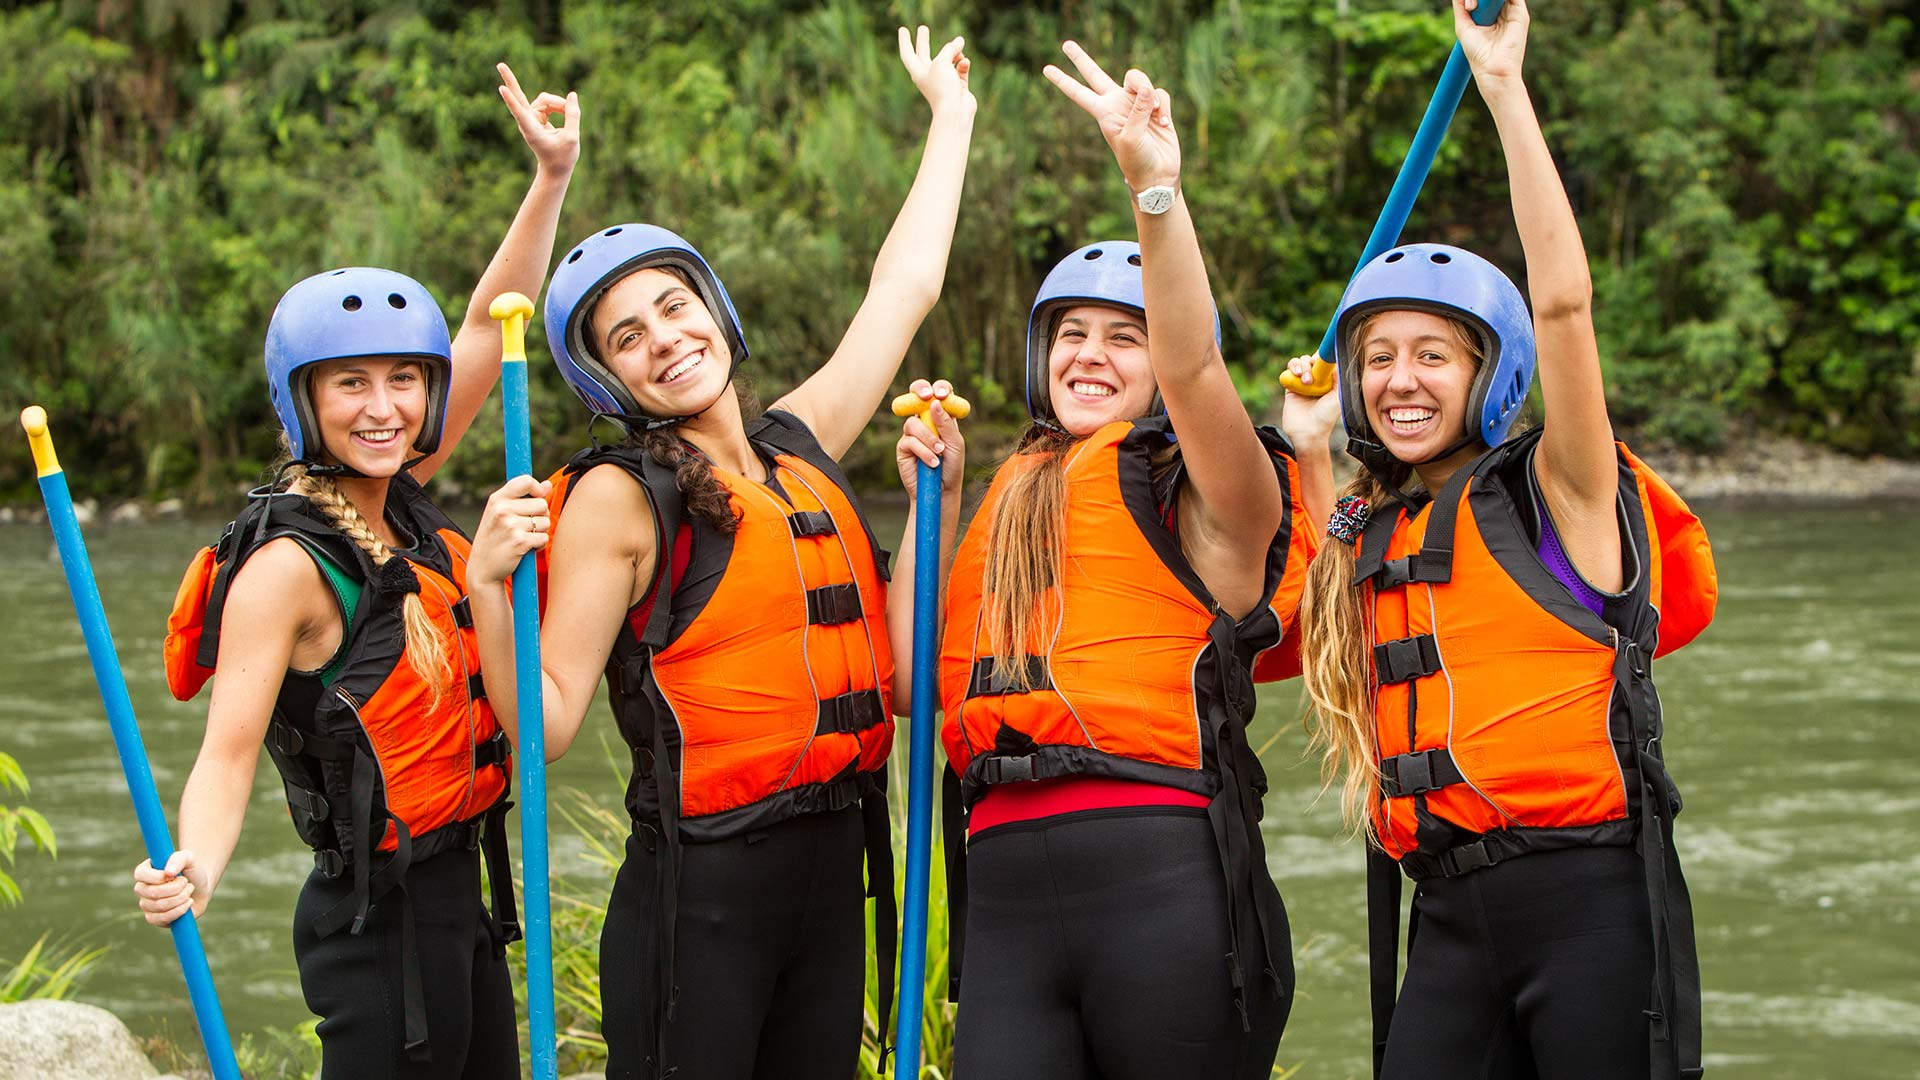 happy rafting tourists celebrate with lifejackets